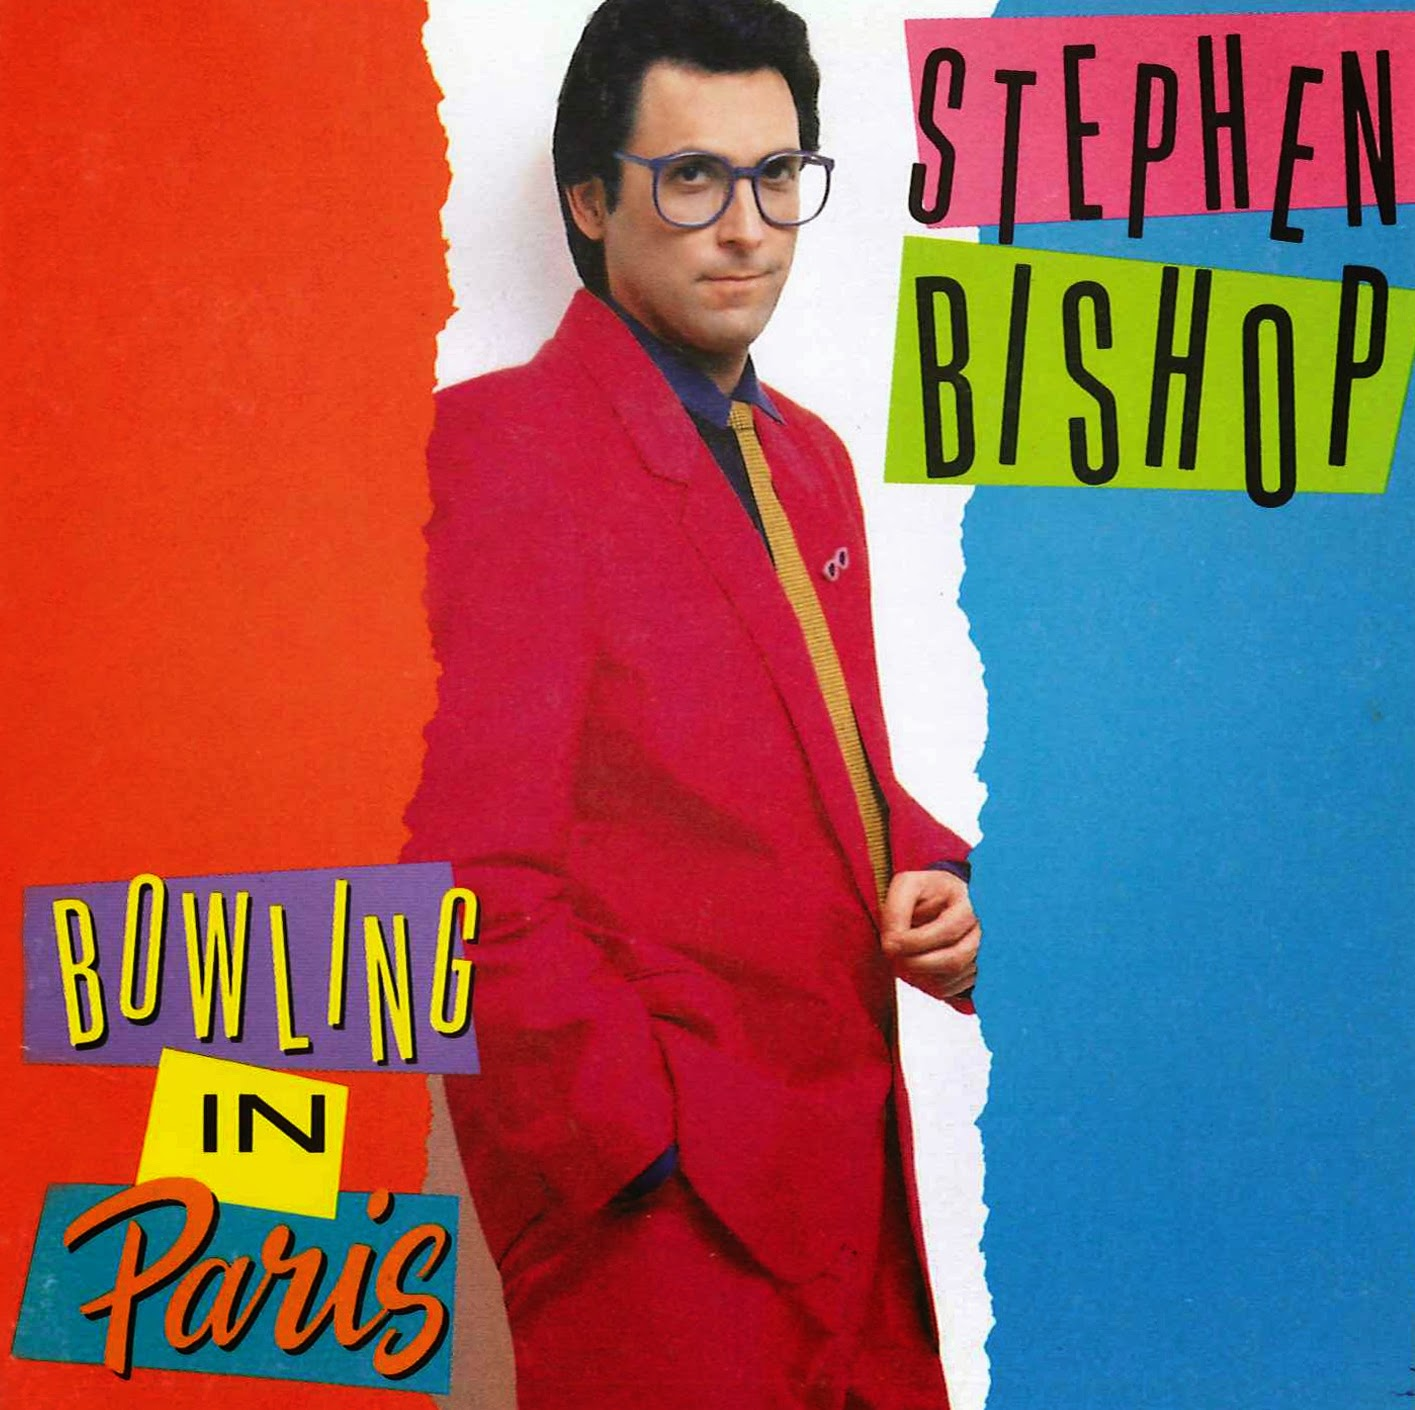 Stephen Bishop Bowling in Paris 1989 aor melodic rock